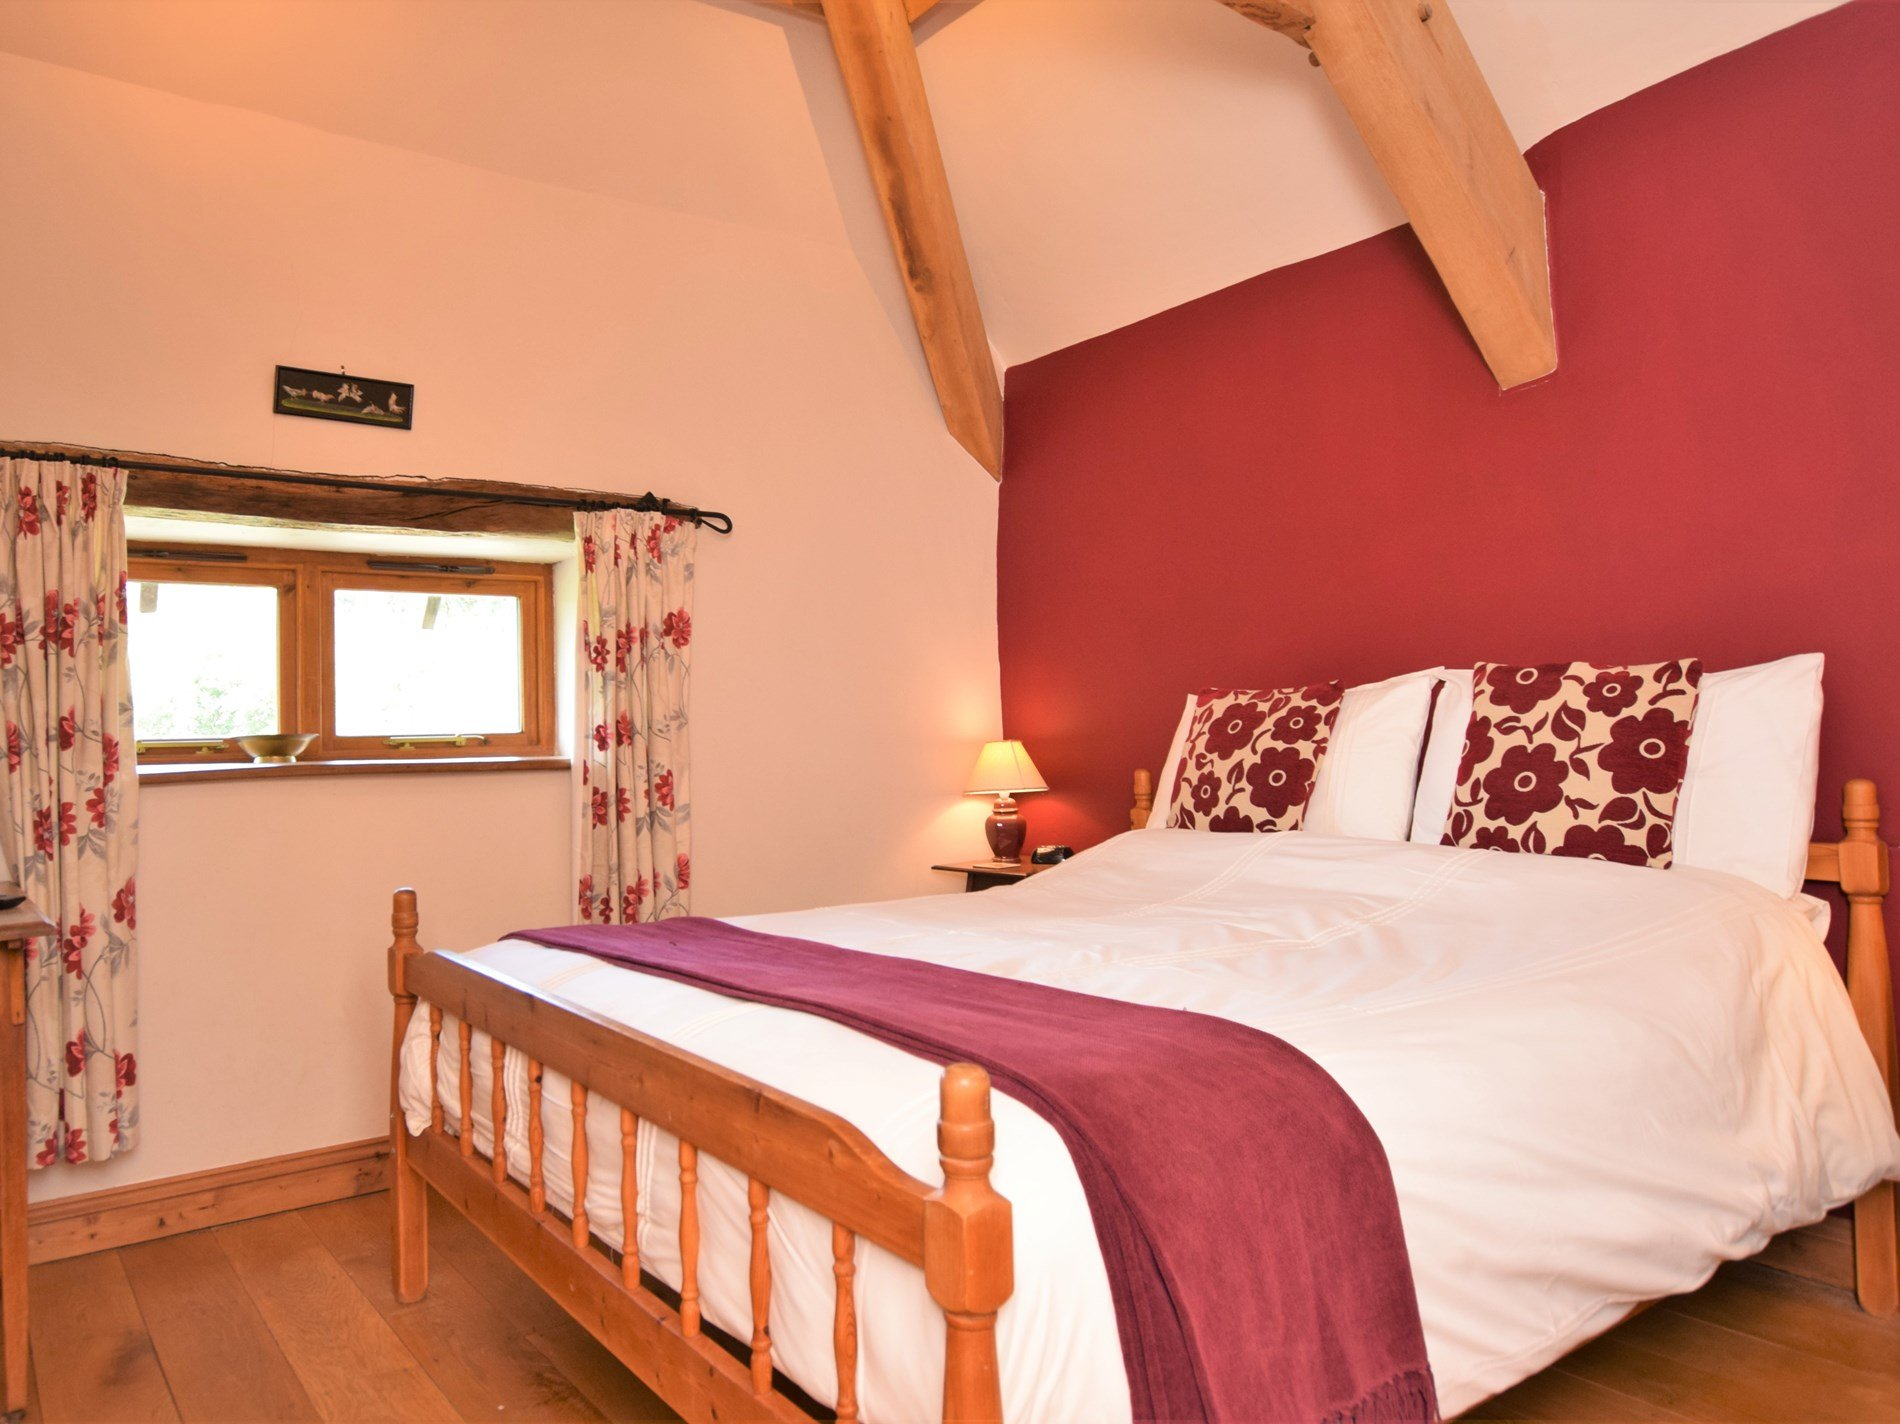 Master bedroom with wonderful views over the orchard